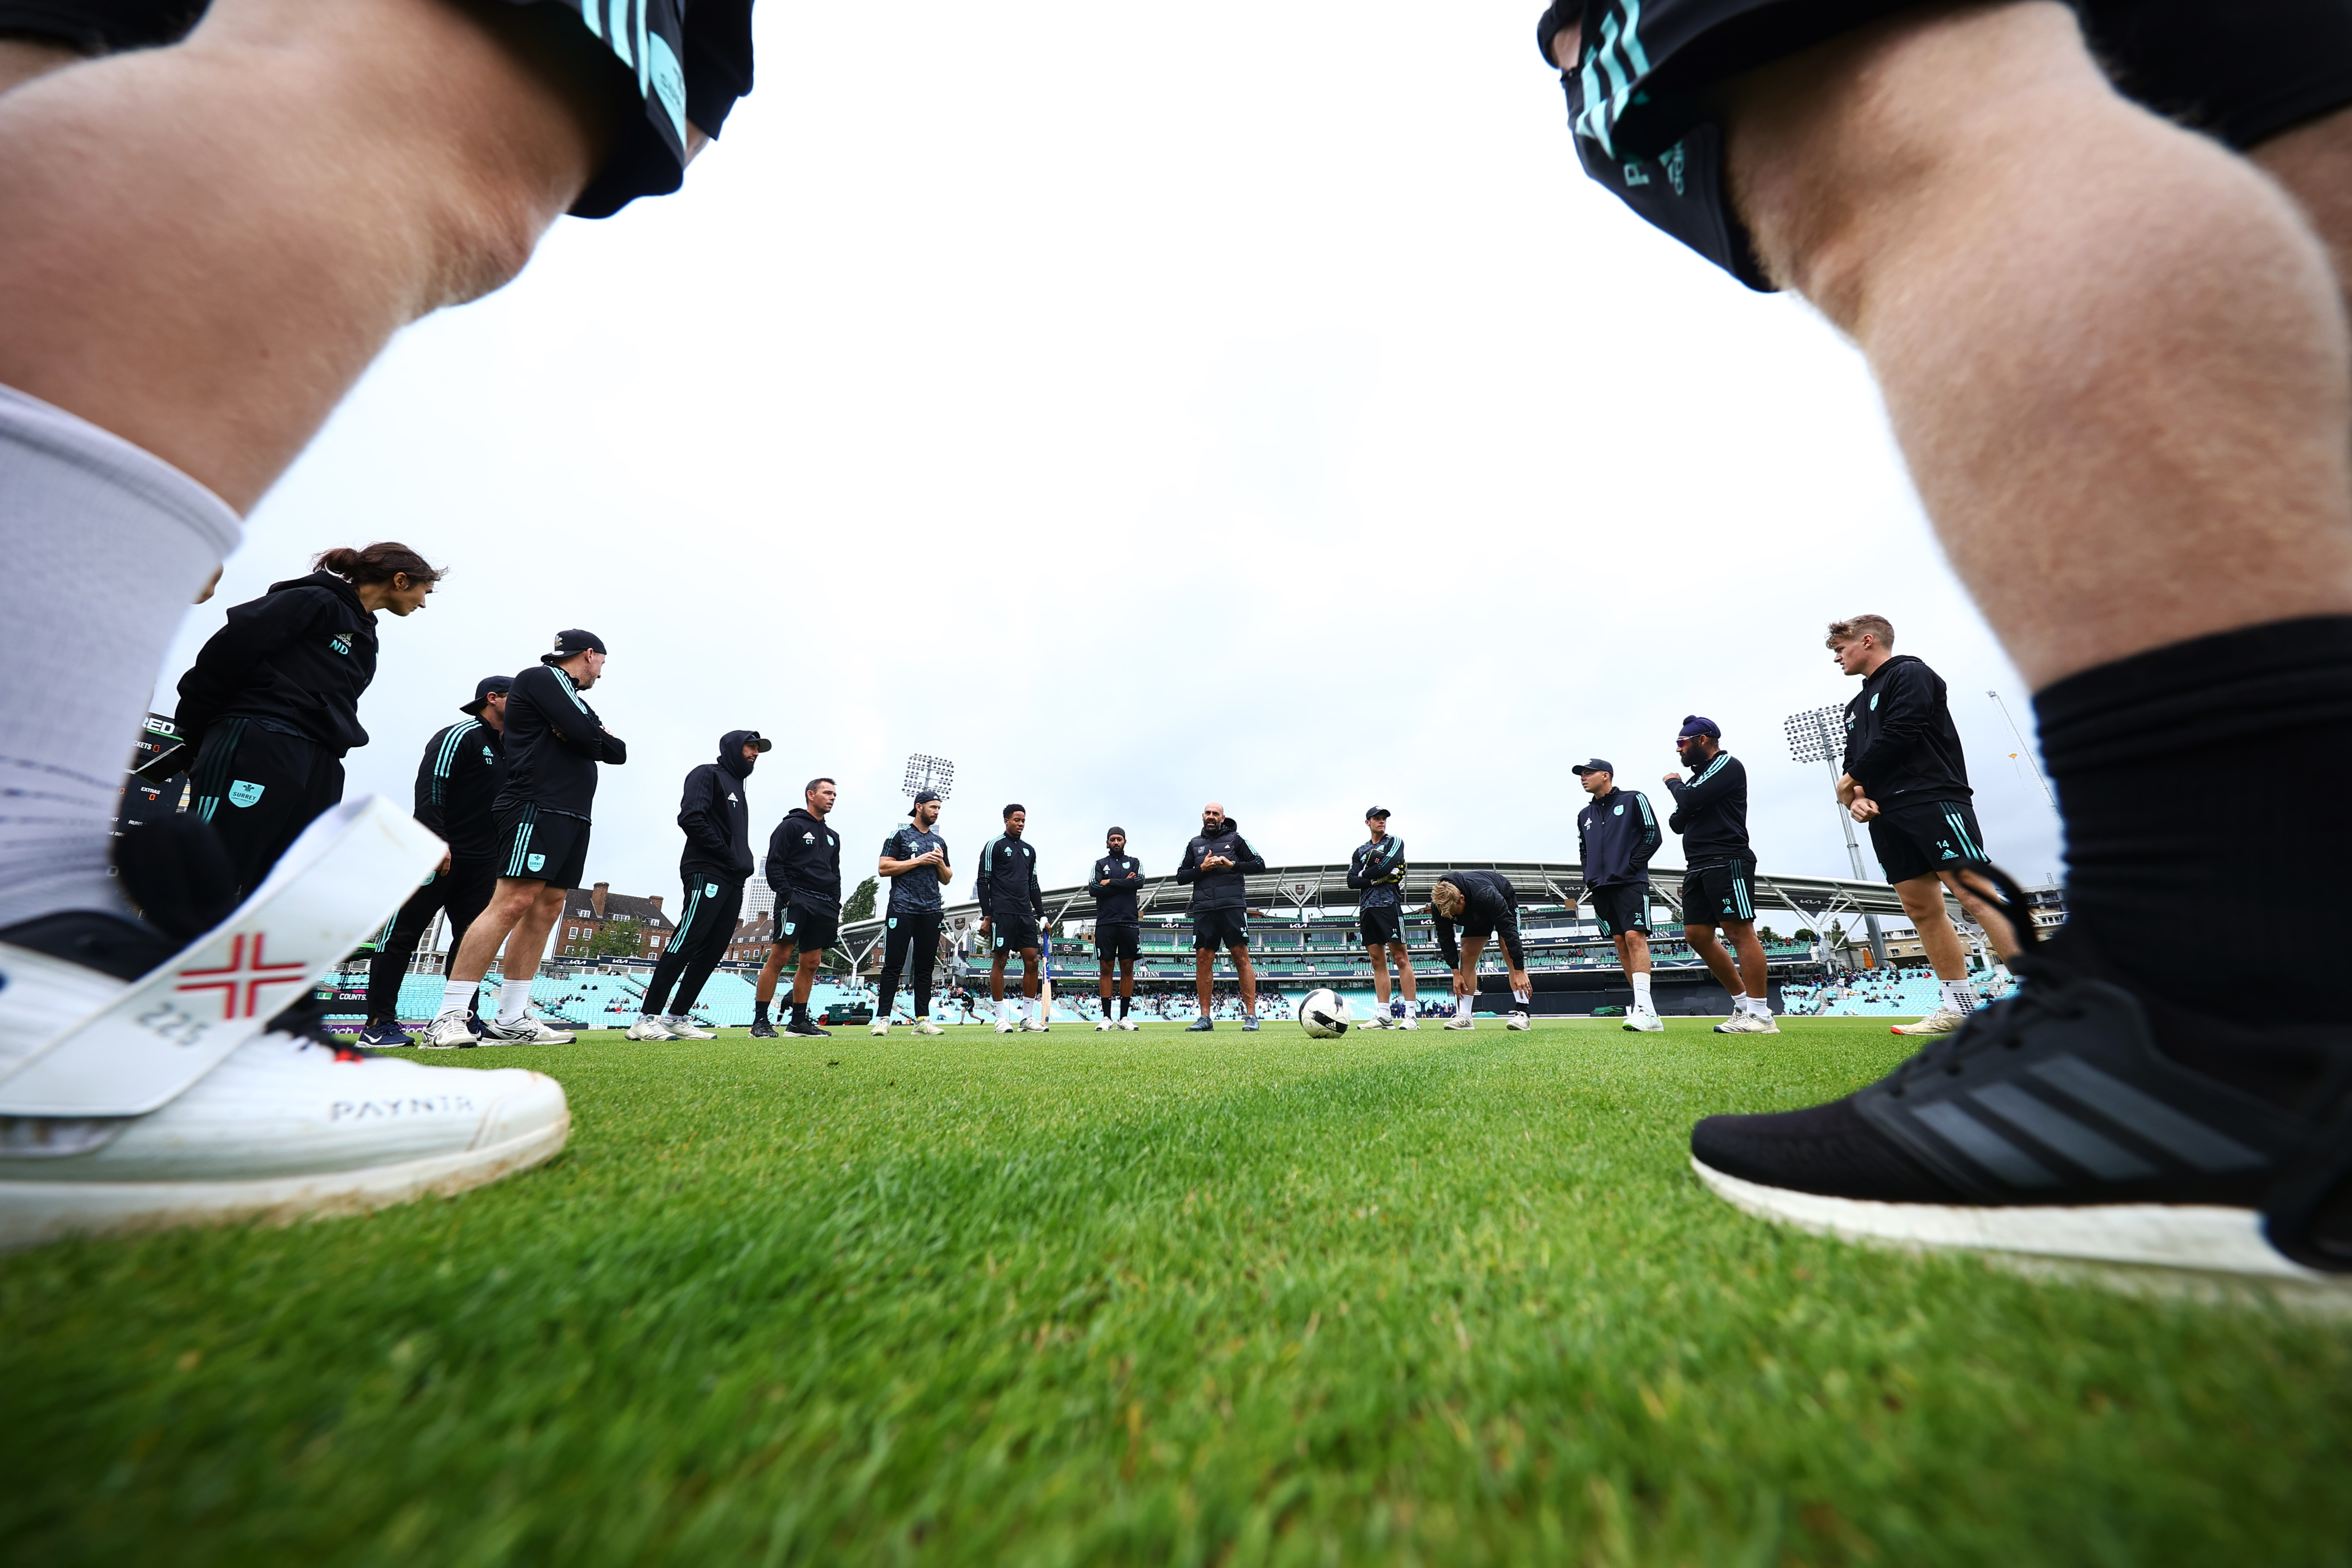 <p>LONDON, ENGLAND - JULY 30: Surrey team talk during the Royal London One Day Cup match between Surrey and Northamptonshire at The Kia Oval on July 30, 2021 in London, England. (Photo by Jordan Mansfield/Getty Images for Surrey CCC)</p>